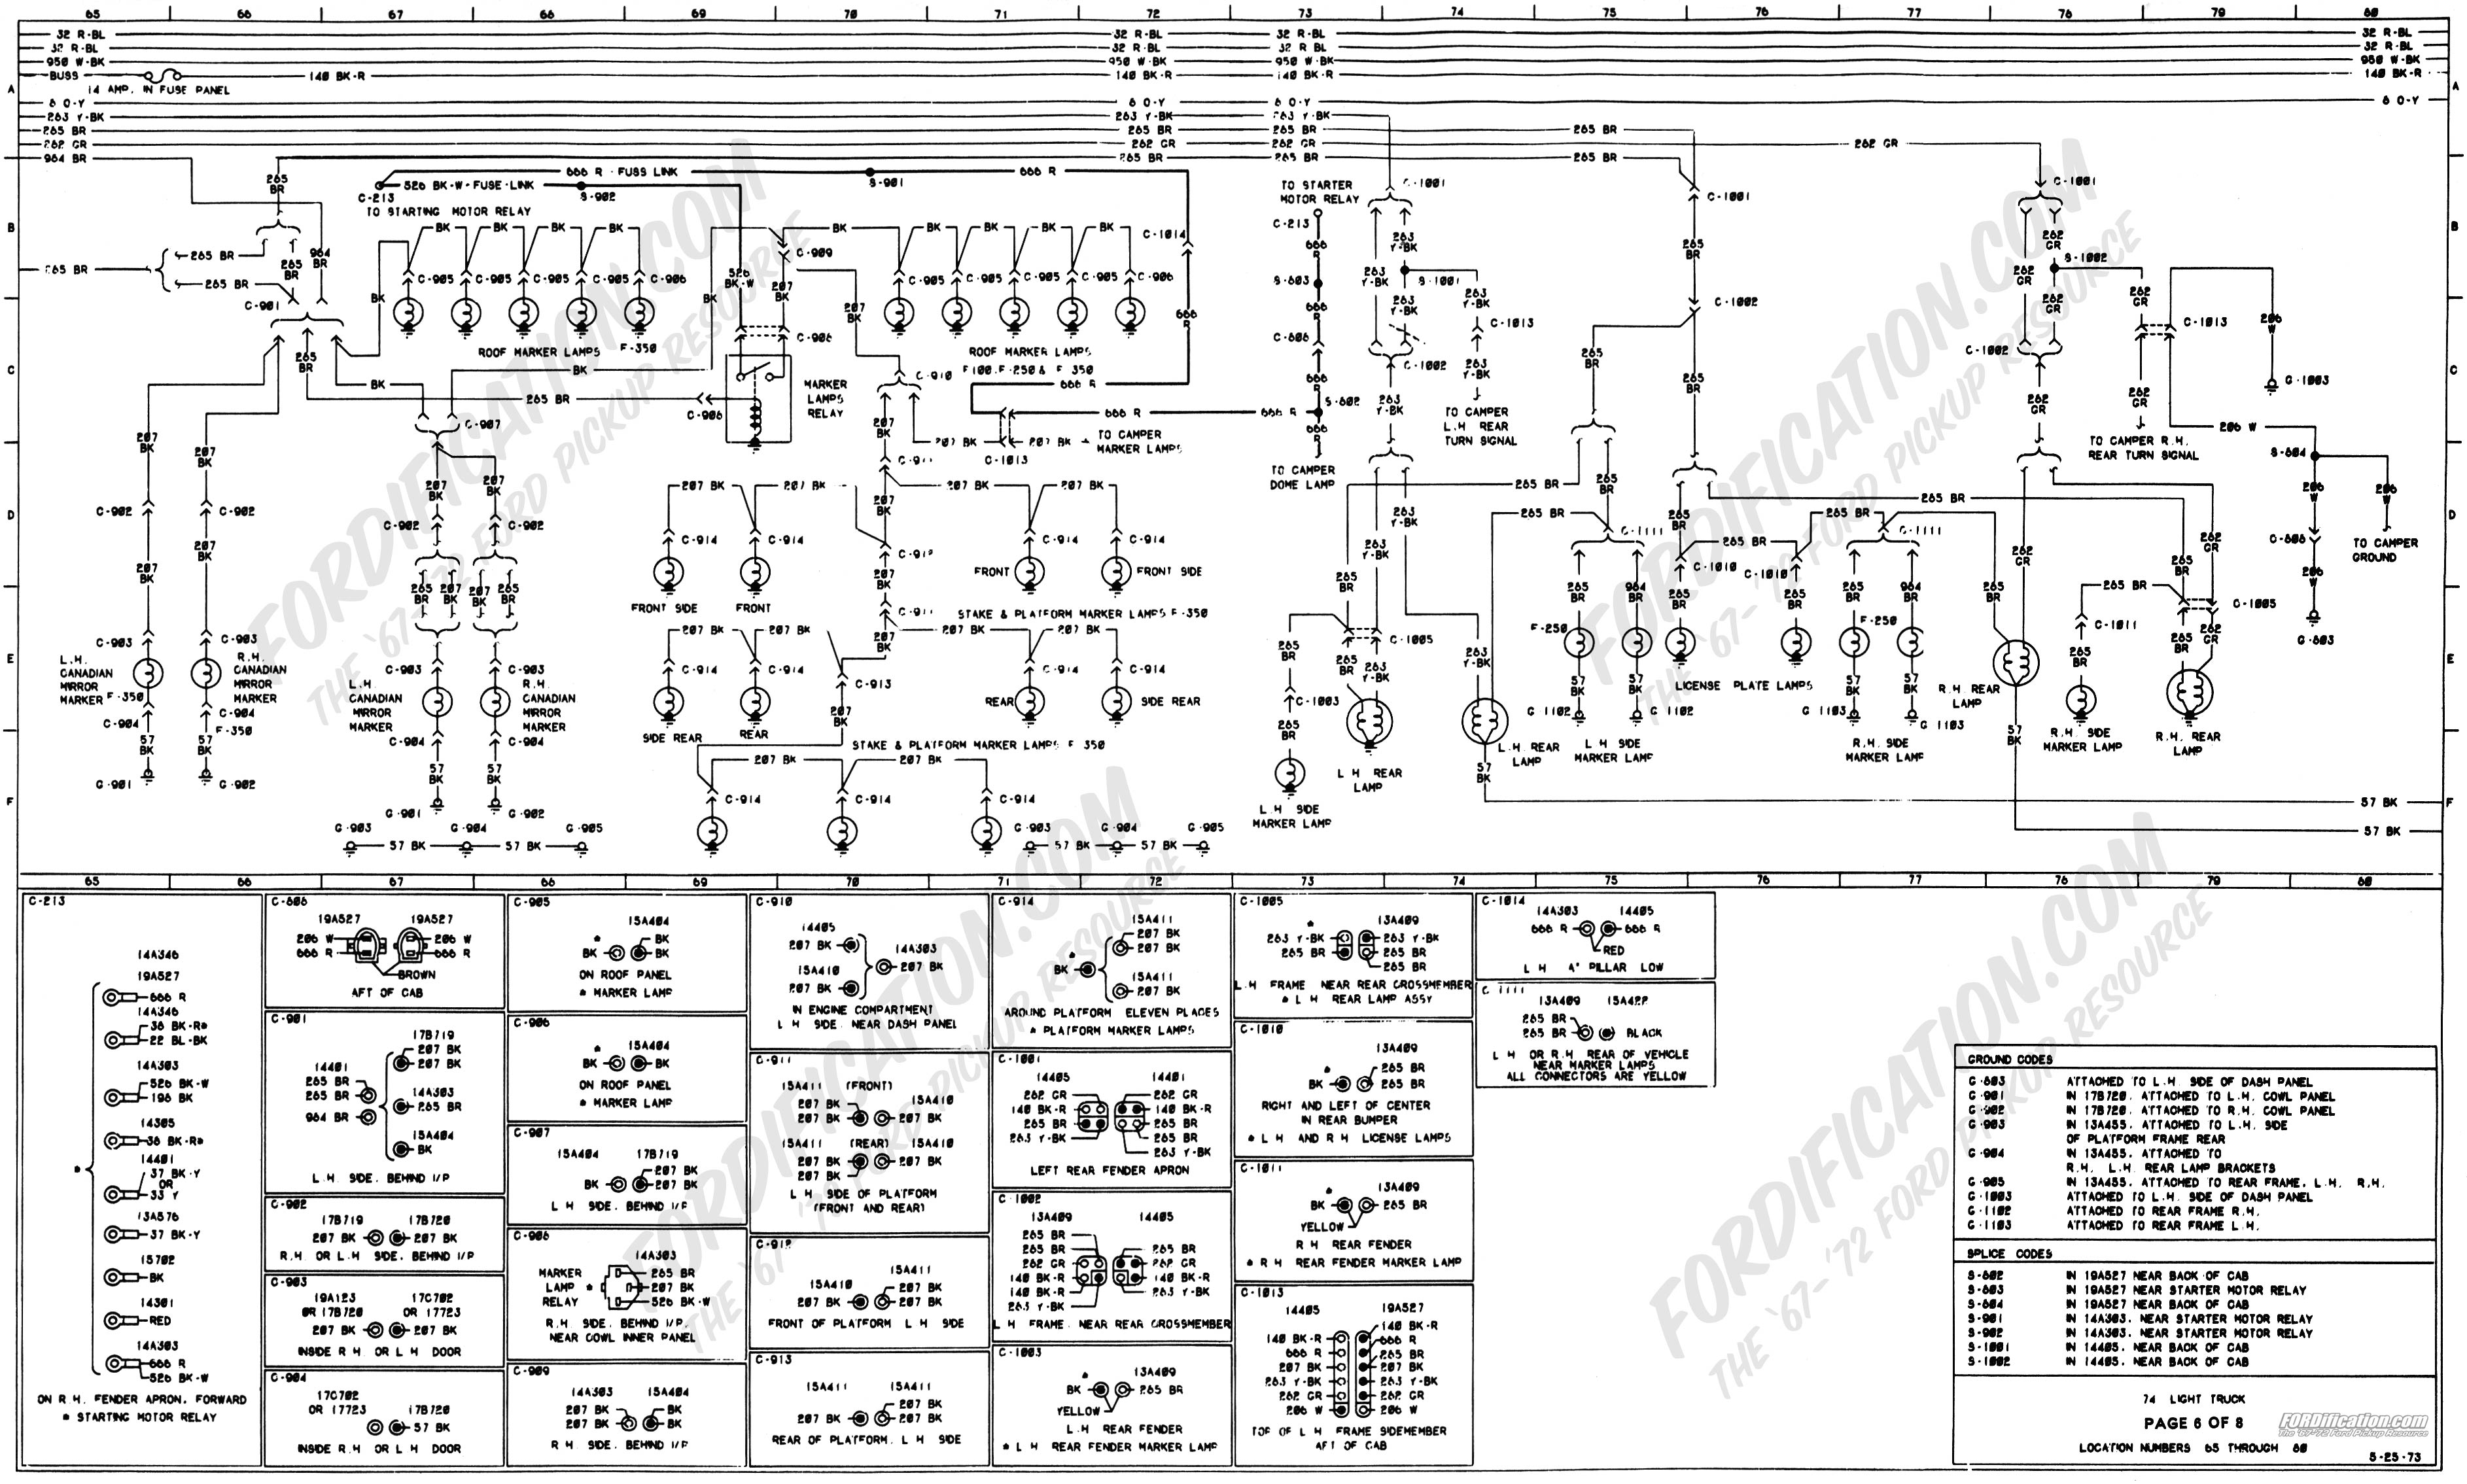 1999 buick century wiring diagram schematic 35 dodge 2 4 engine 1976 toyota land cruiser 1979 f250 data1973 ford truck diagrams u0026 schematics fordification